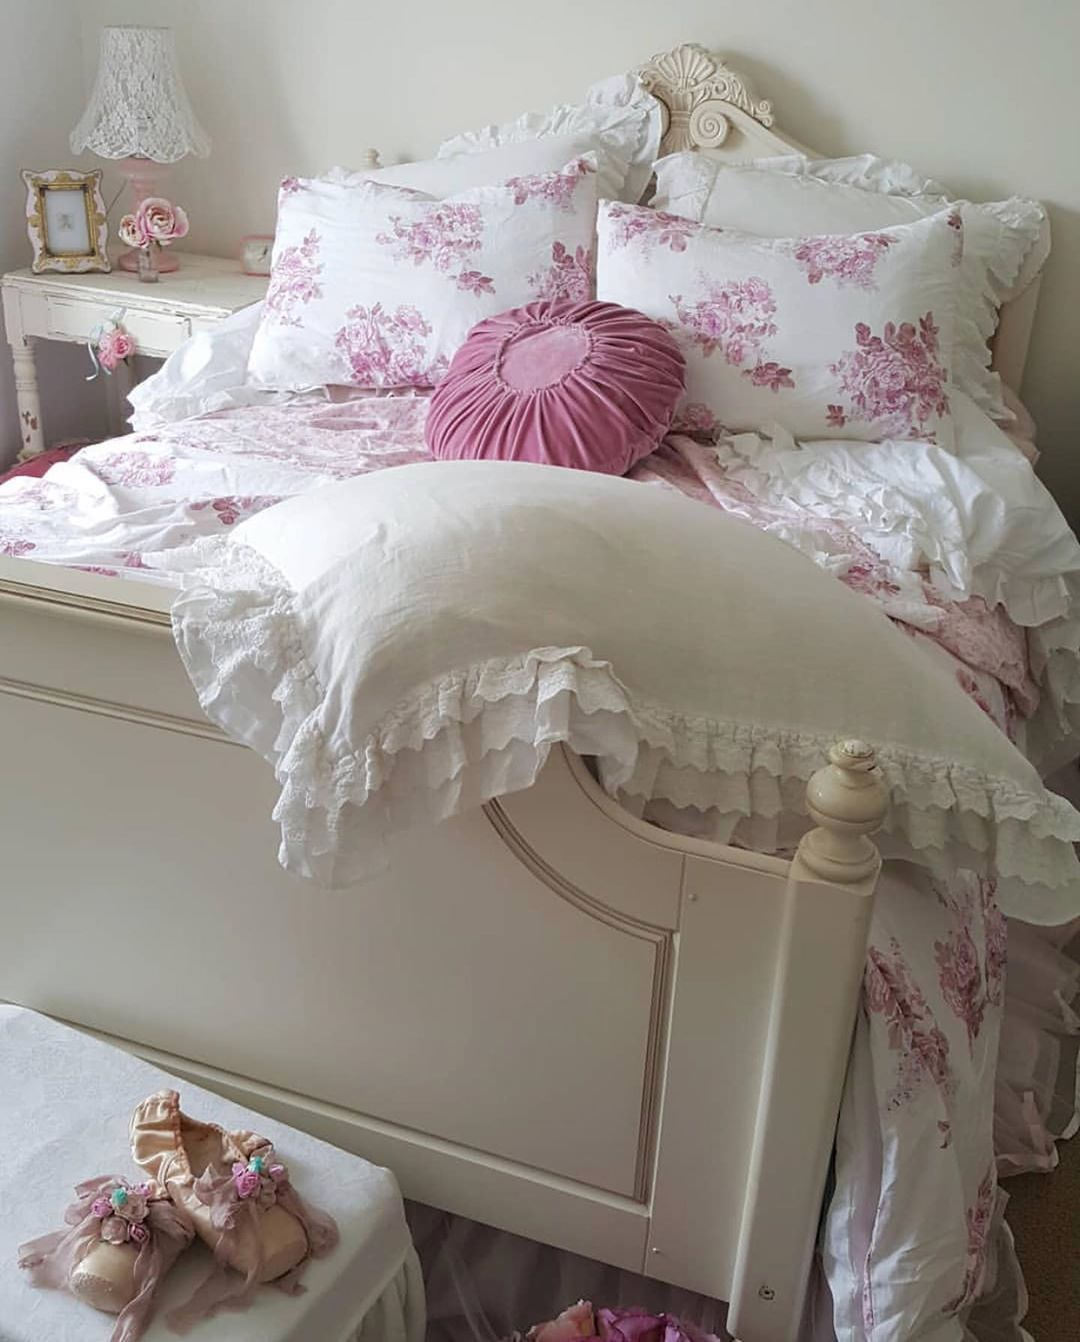 Simply Shabby Chic Bedding Available Target Mixed With Rachel